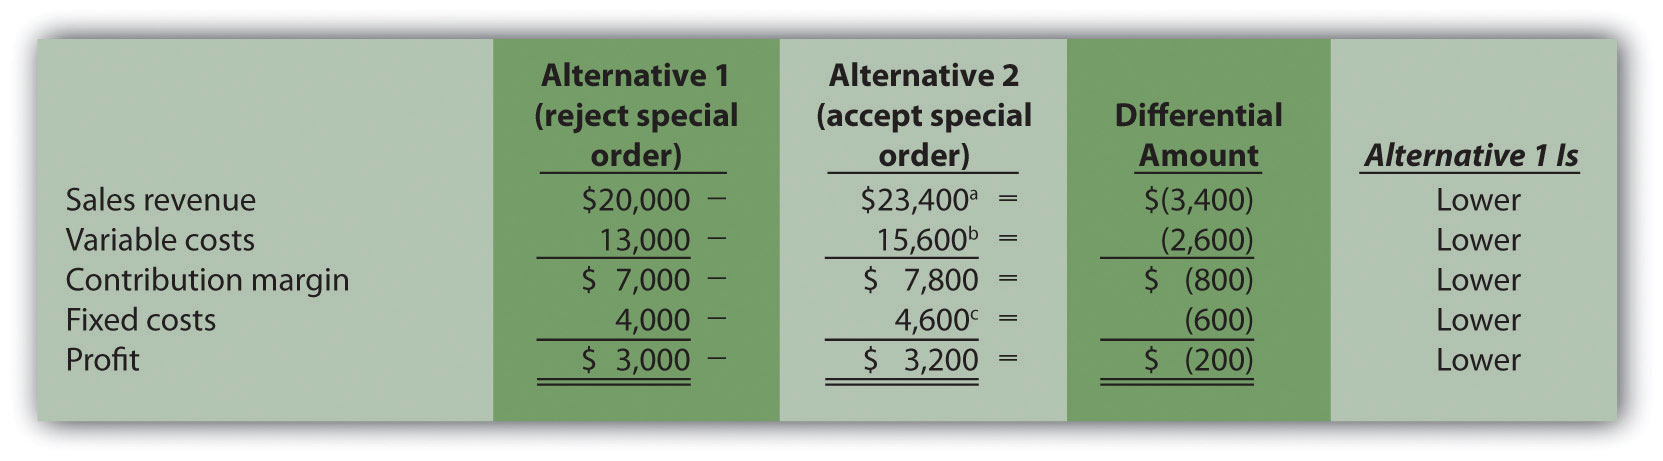 costs and special order